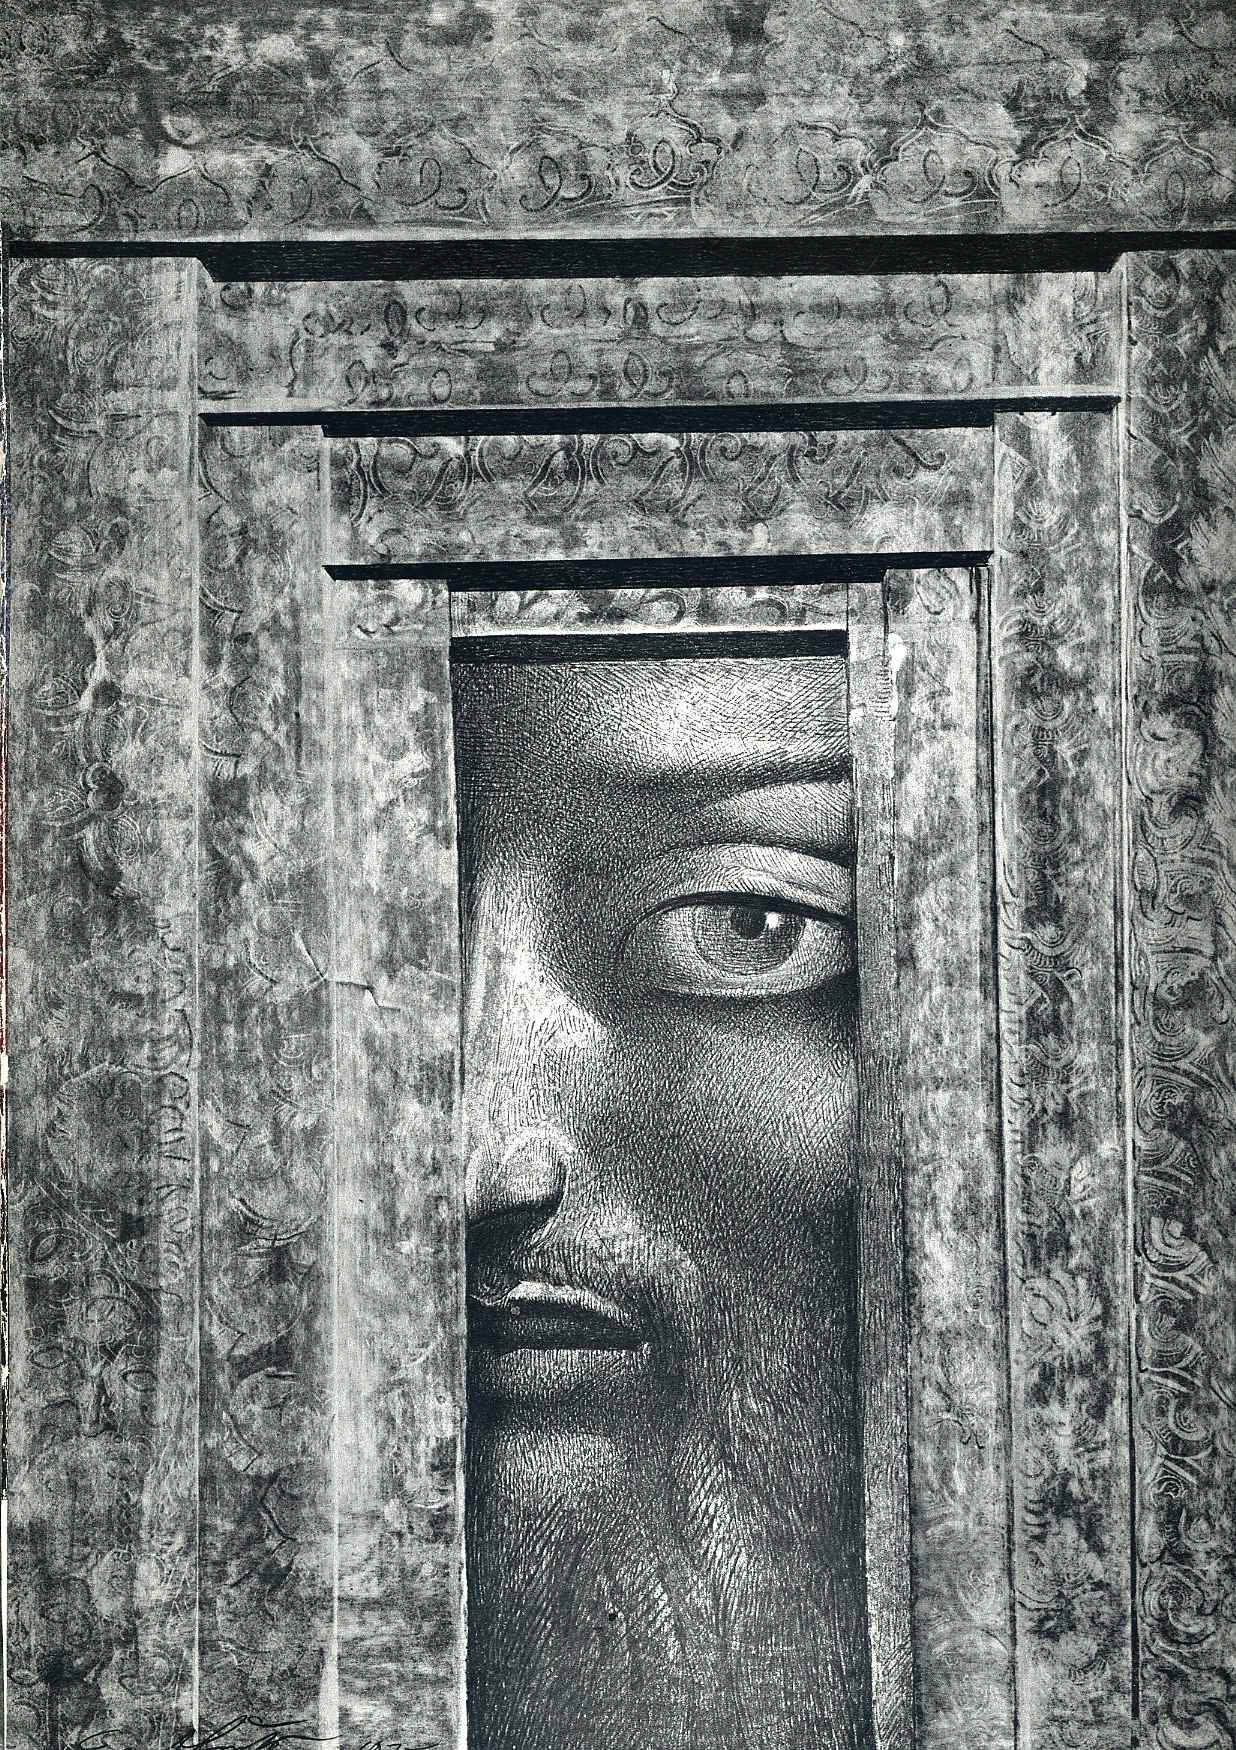 Review: The Doors of Perception